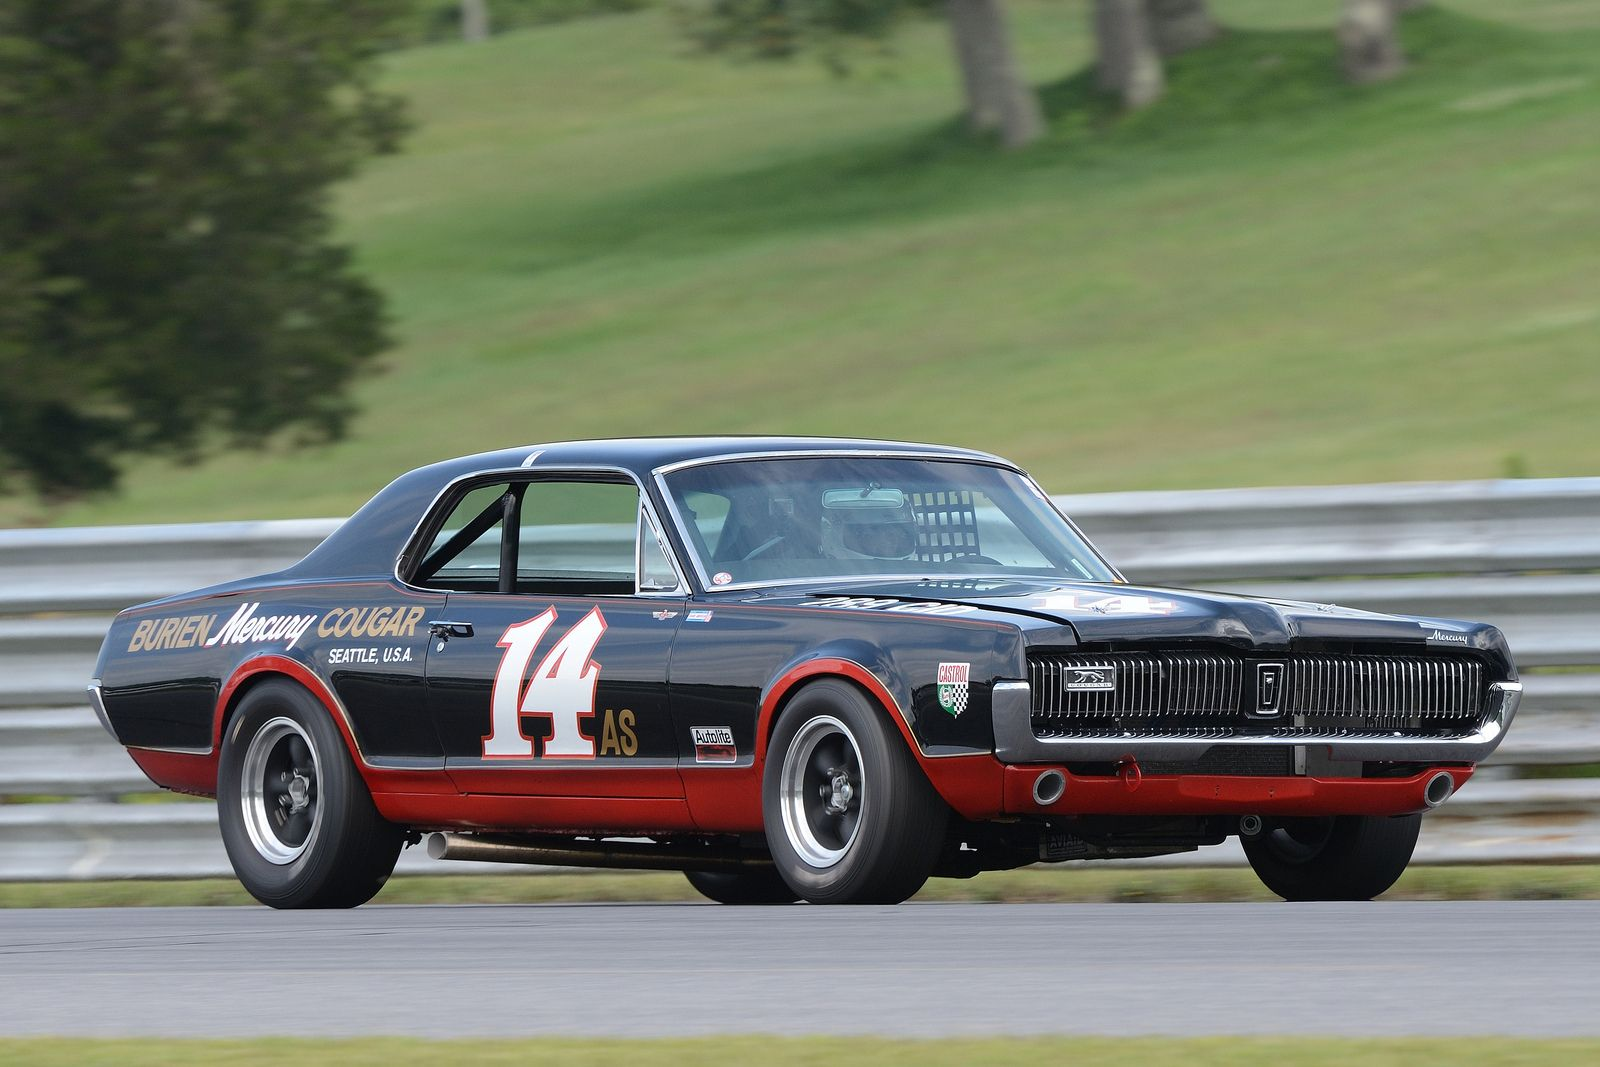 Number 14 1967 mercury cougar driven by ike keeler flickr photo sharing